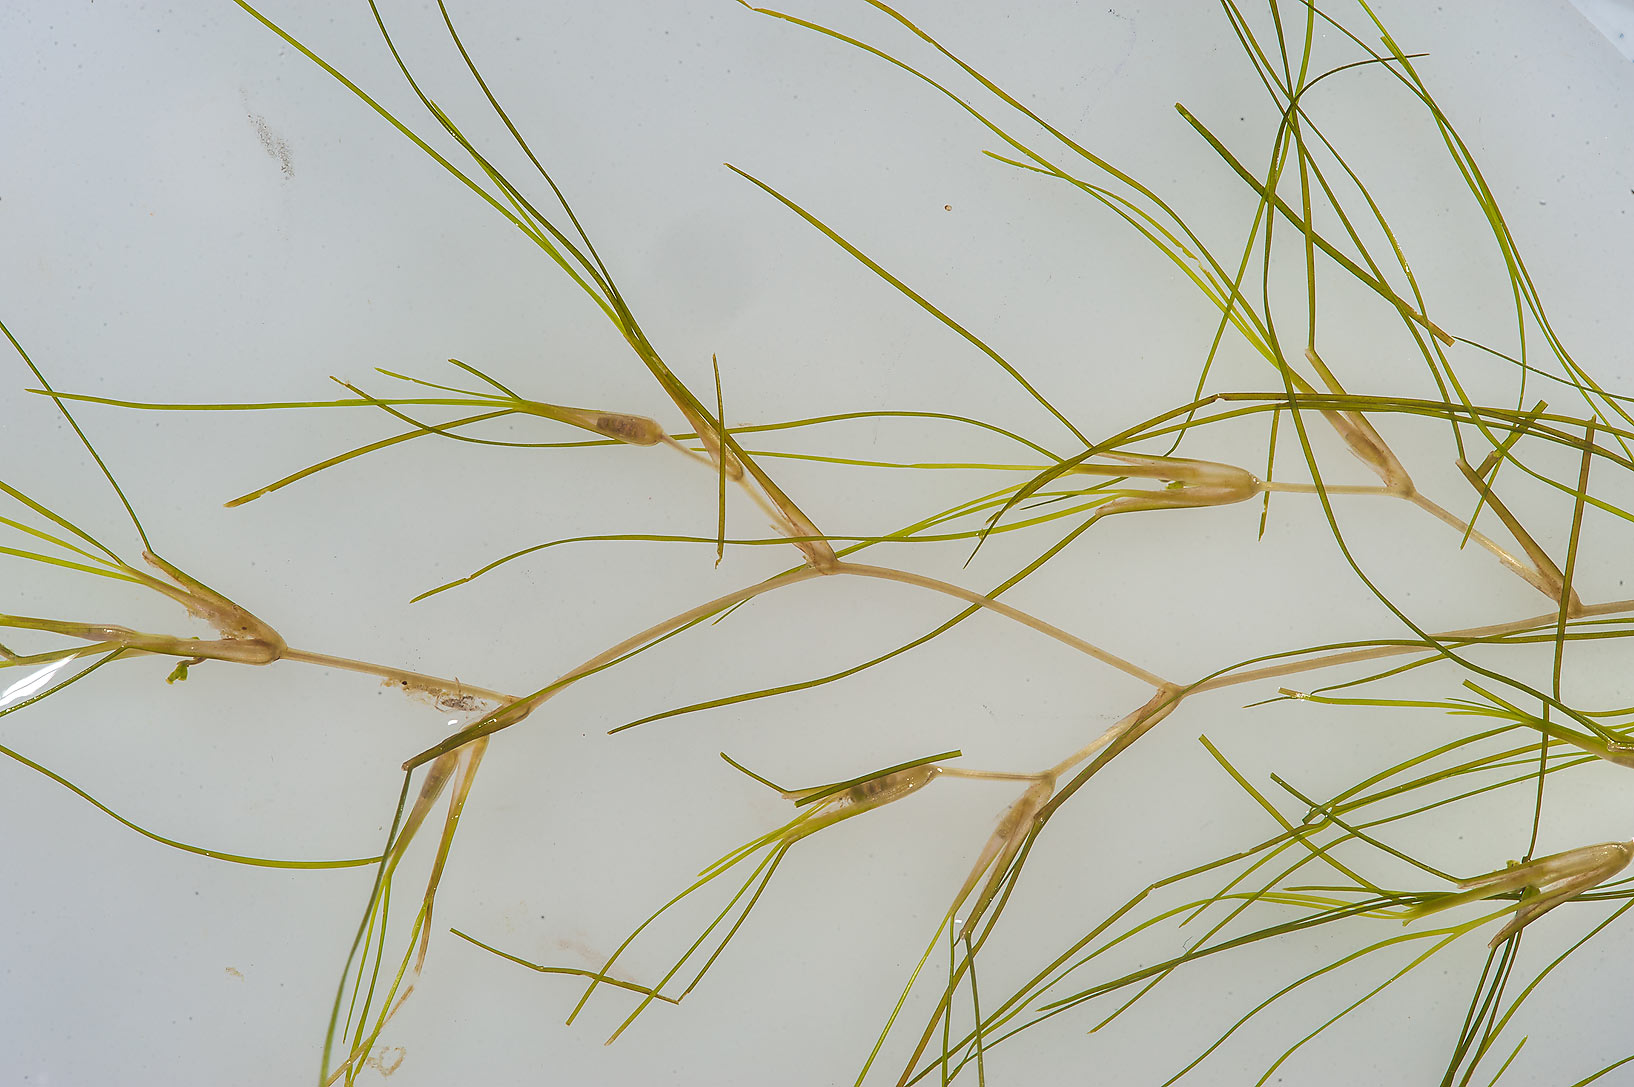 Aquatic plant Widgeon Grass (Ruppia maritima...jail ponds (sewage lagoons). Qatar